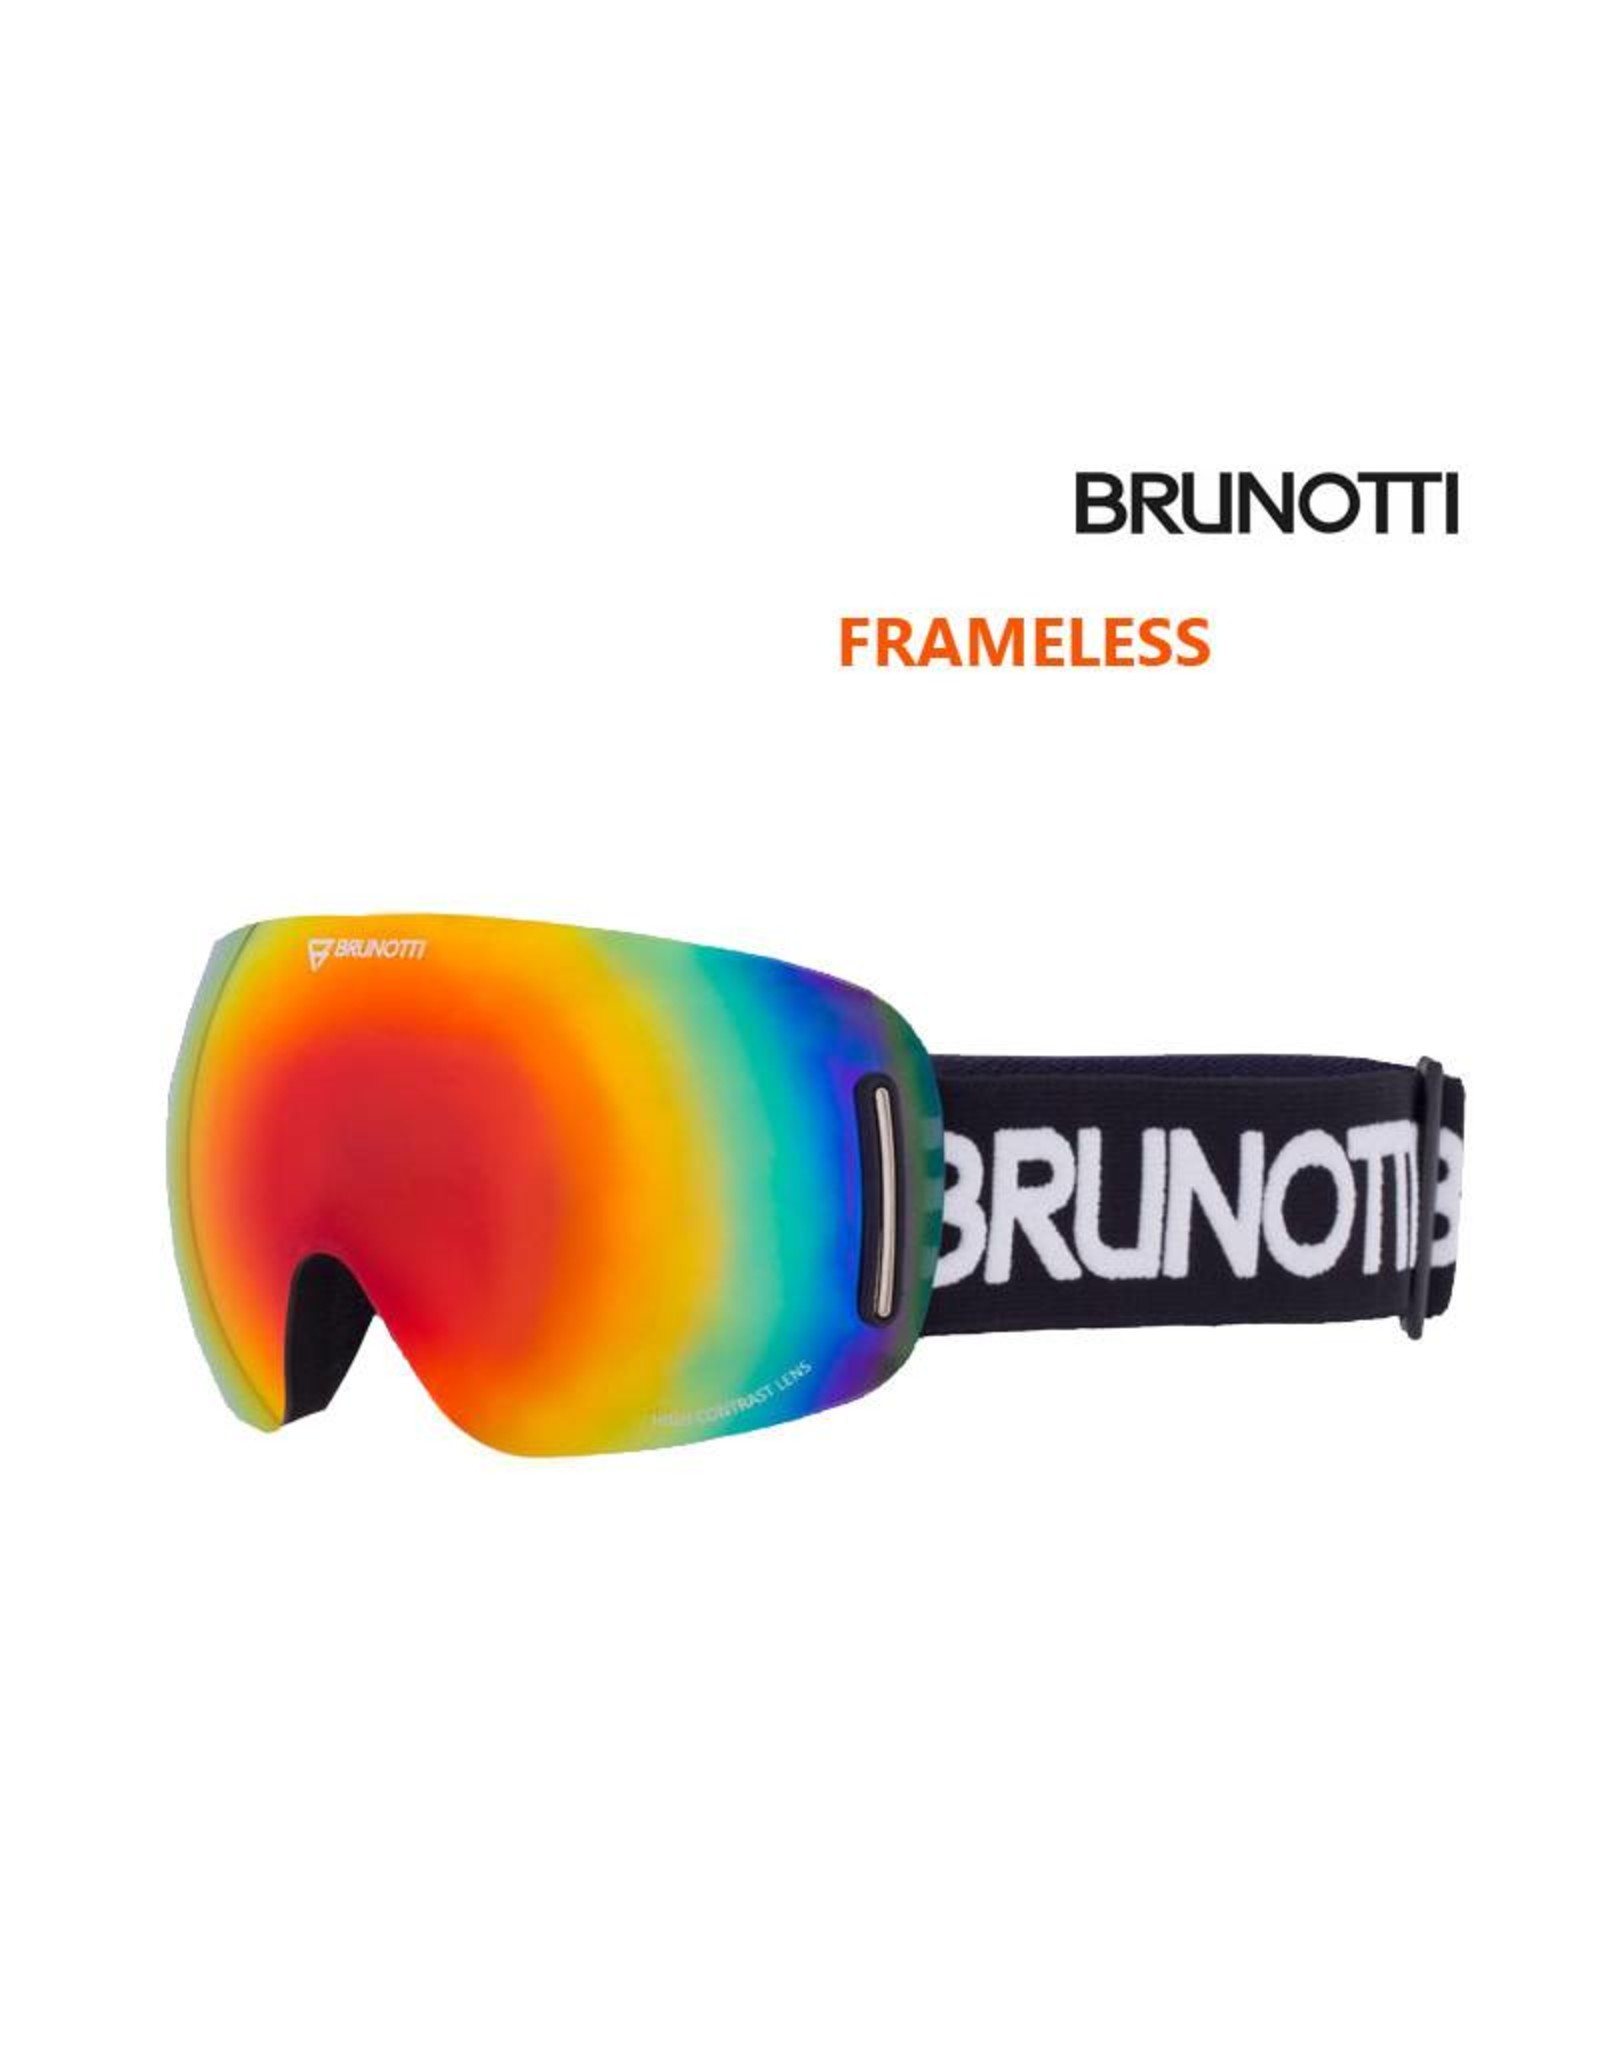 BRUNOTTI SKIBRIL BRUNOTTI Speed 1 Black Uni